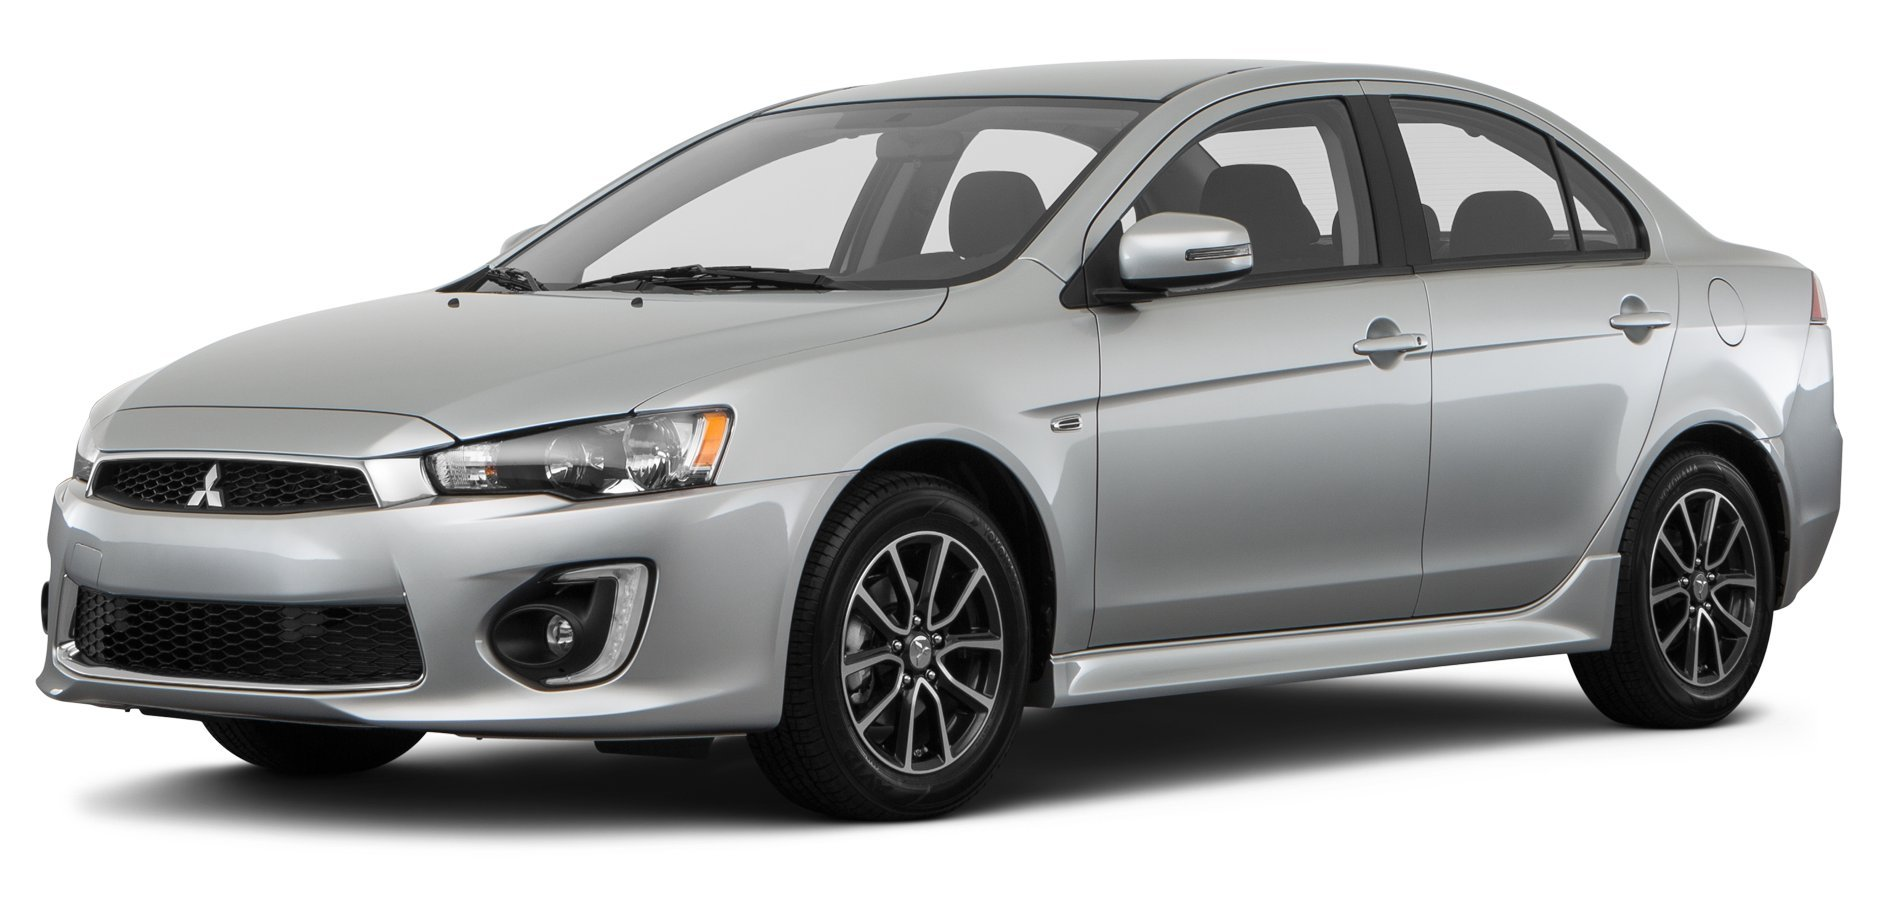 Amazon.com: 2017 Mitsubishi Lancer Reviews, Images, and ...